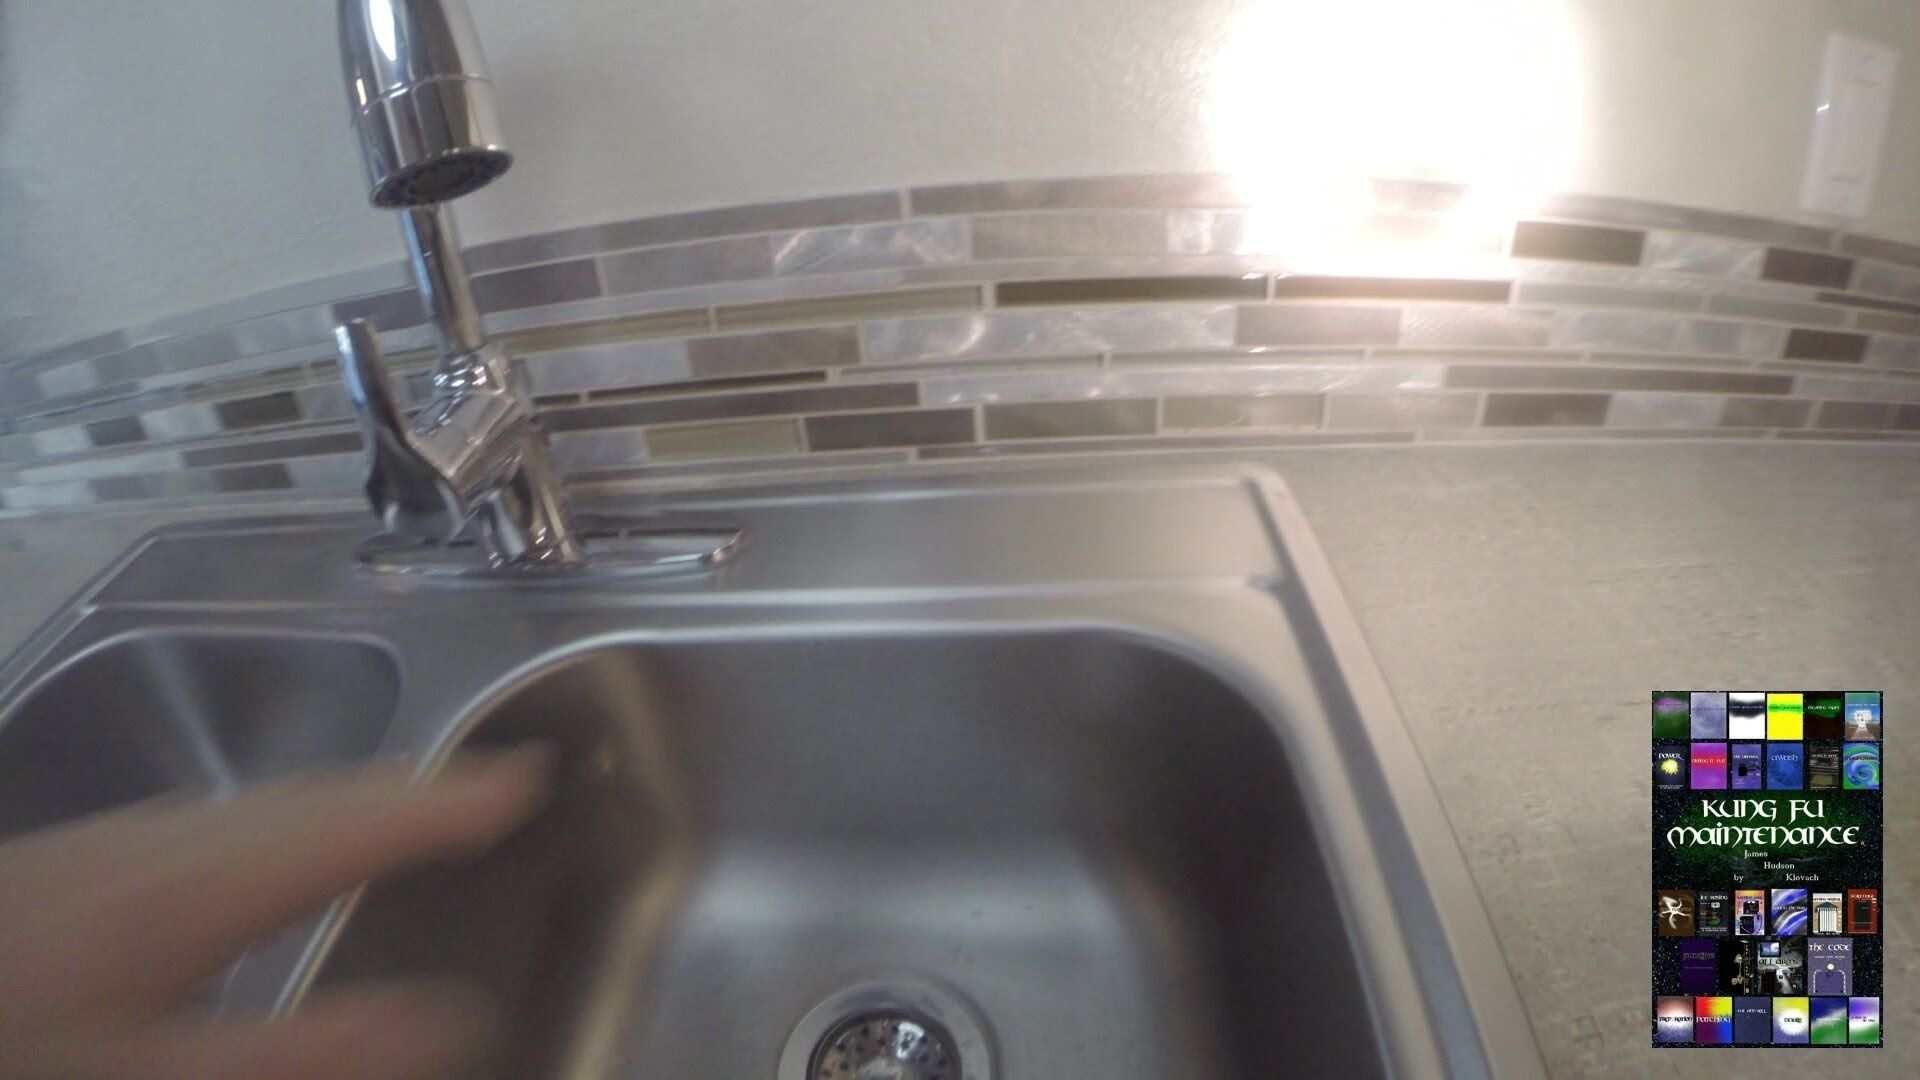 Dishwasher Needs Air Gap But Sink Does Not Have Hole How